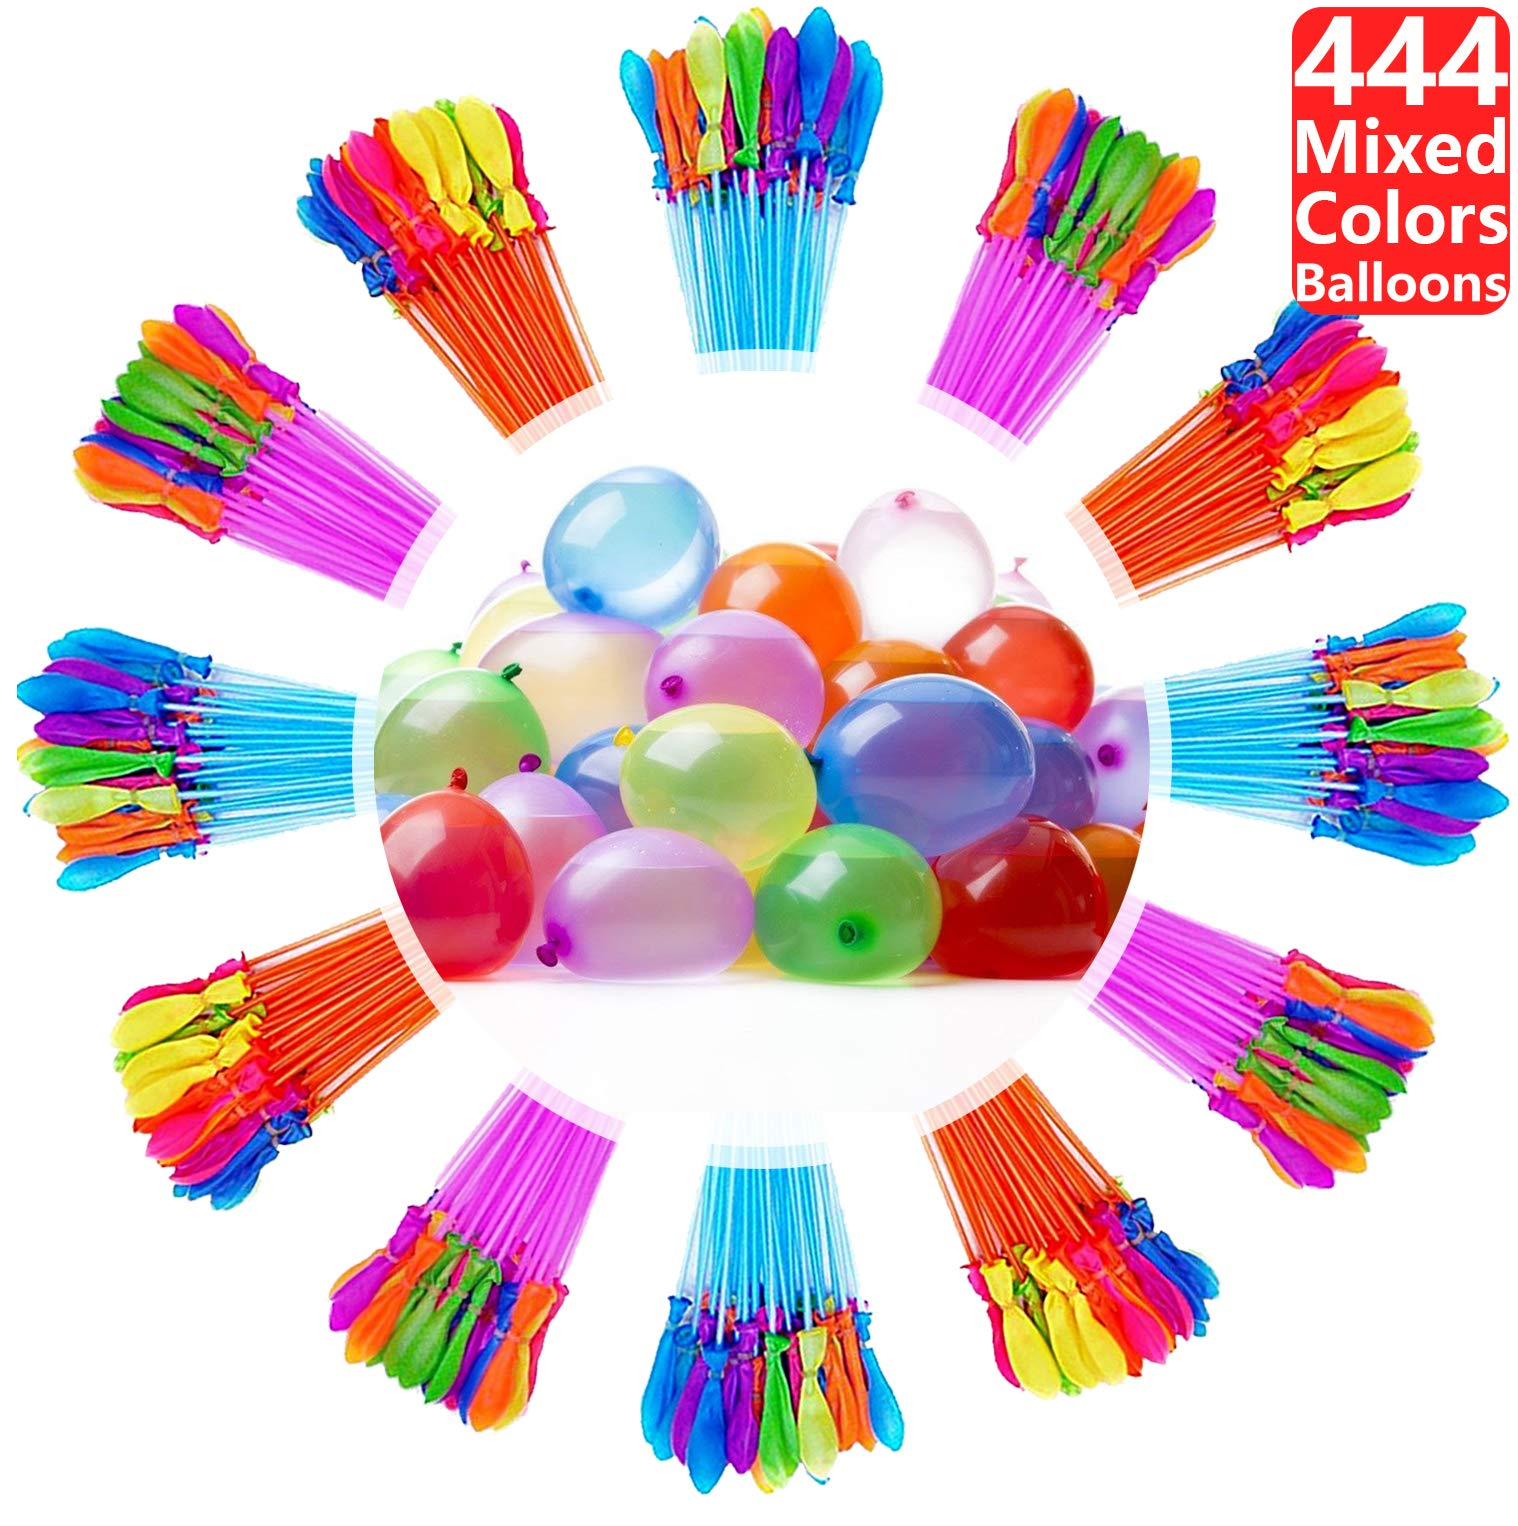 Water Balloons for Kids Girls Boys Balloons Set Party Games Quick Fill Water Balloons 444 Bunches Swimming Pool Outdoor Summer Fun b15